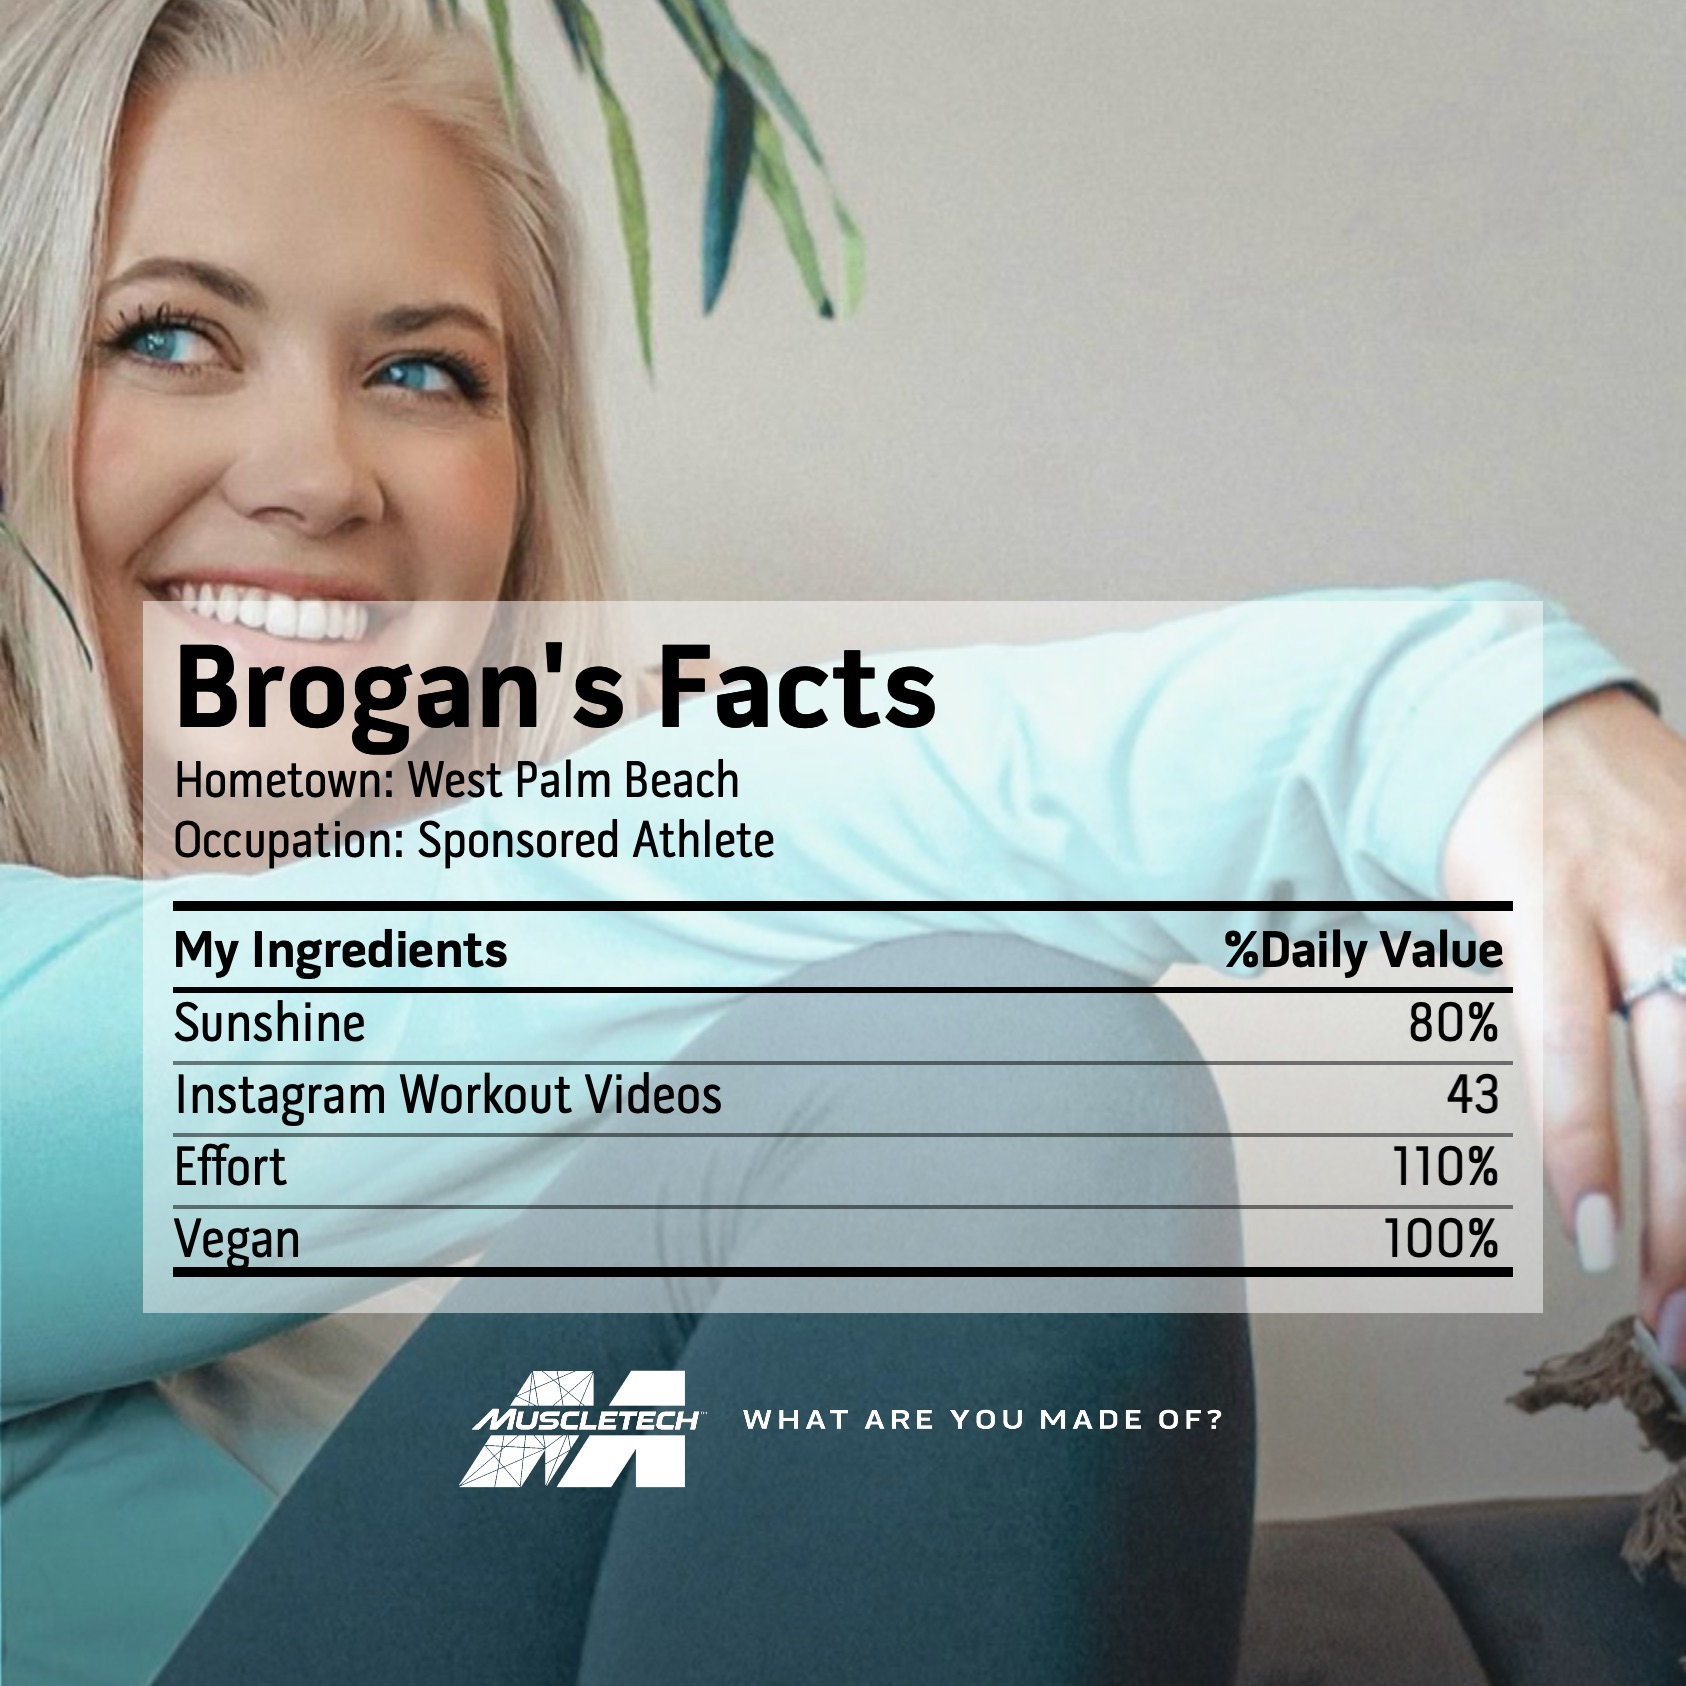 Brogan's Facts